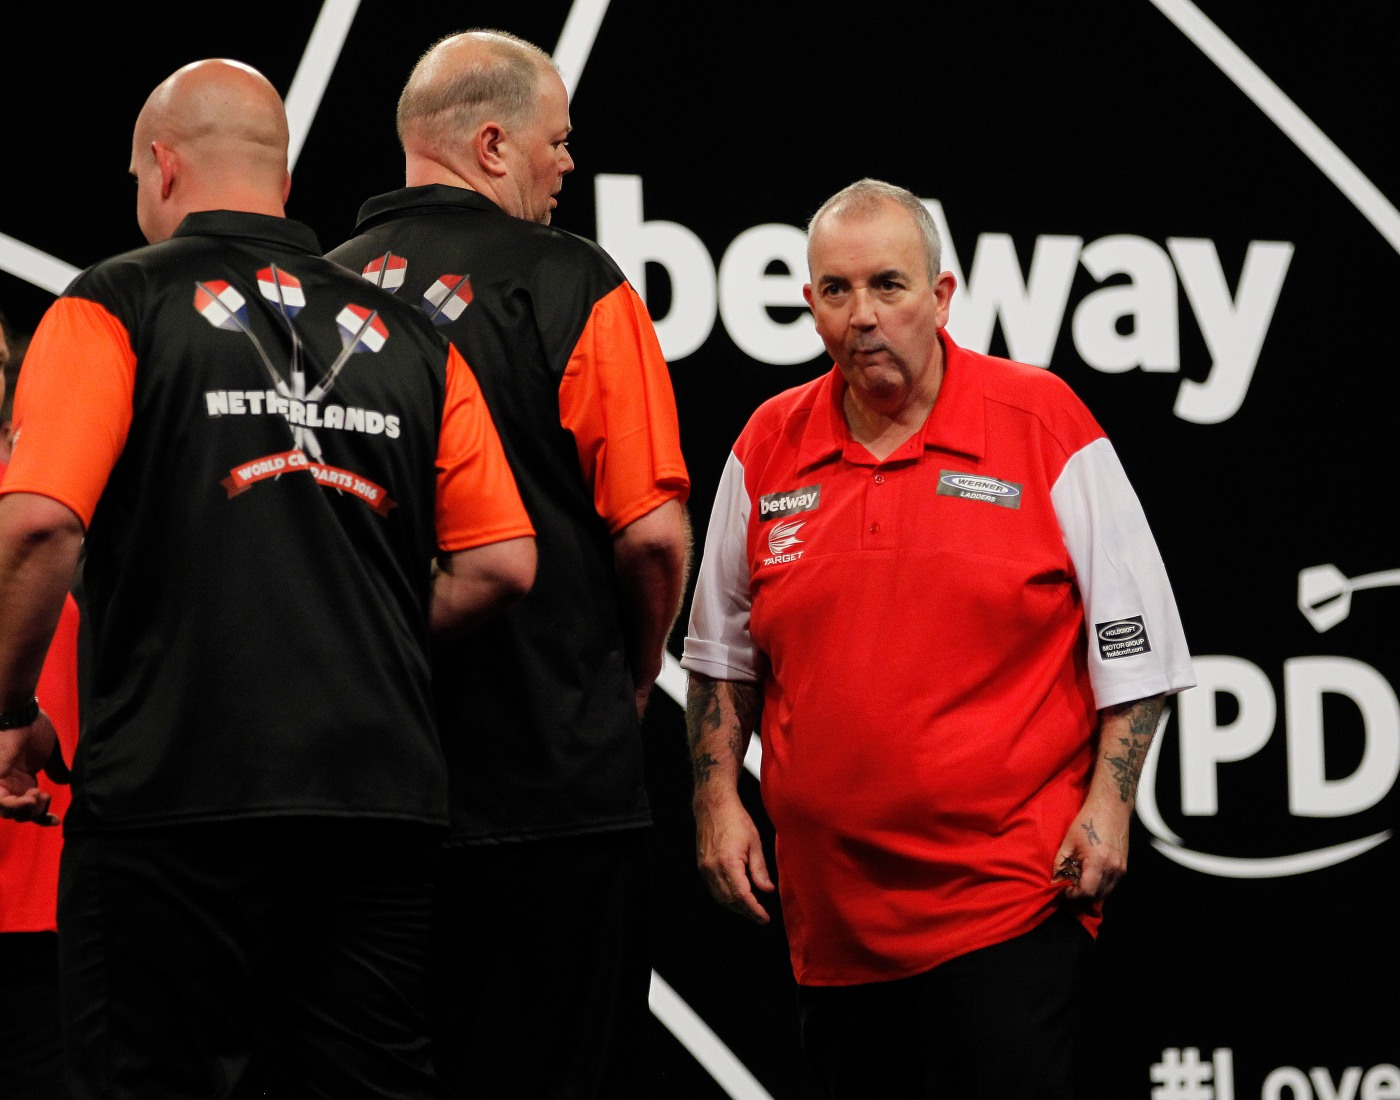 worldcup of darts